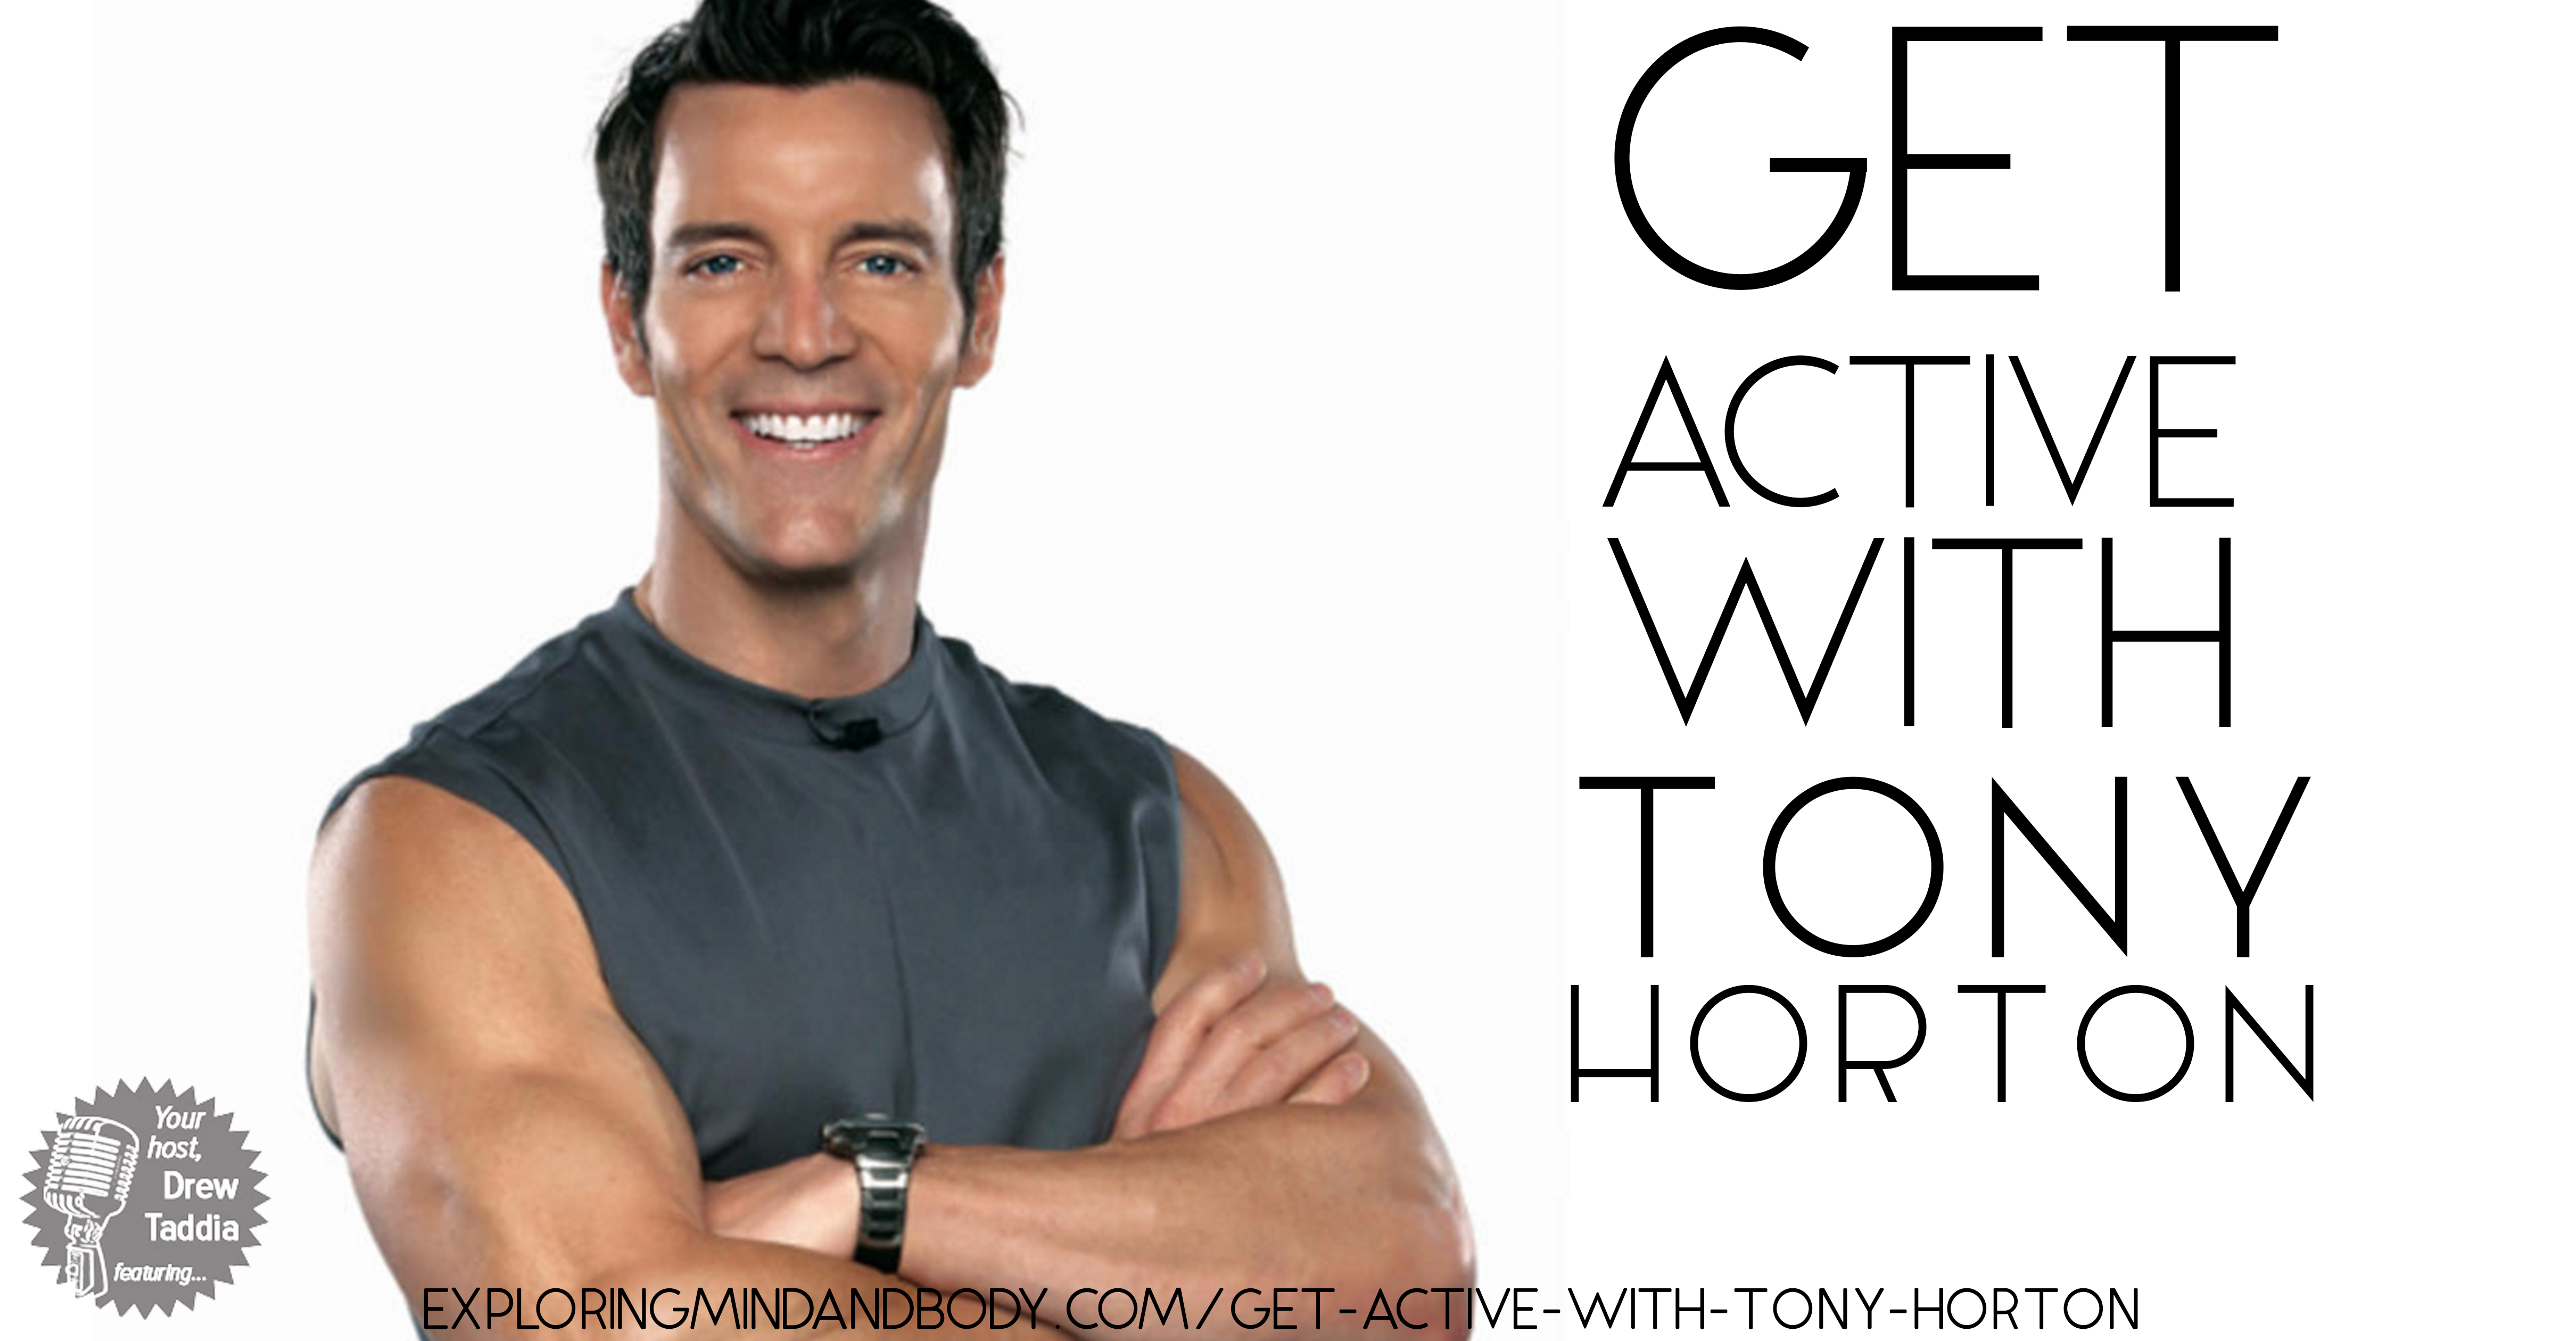 Get active with Tony Horton